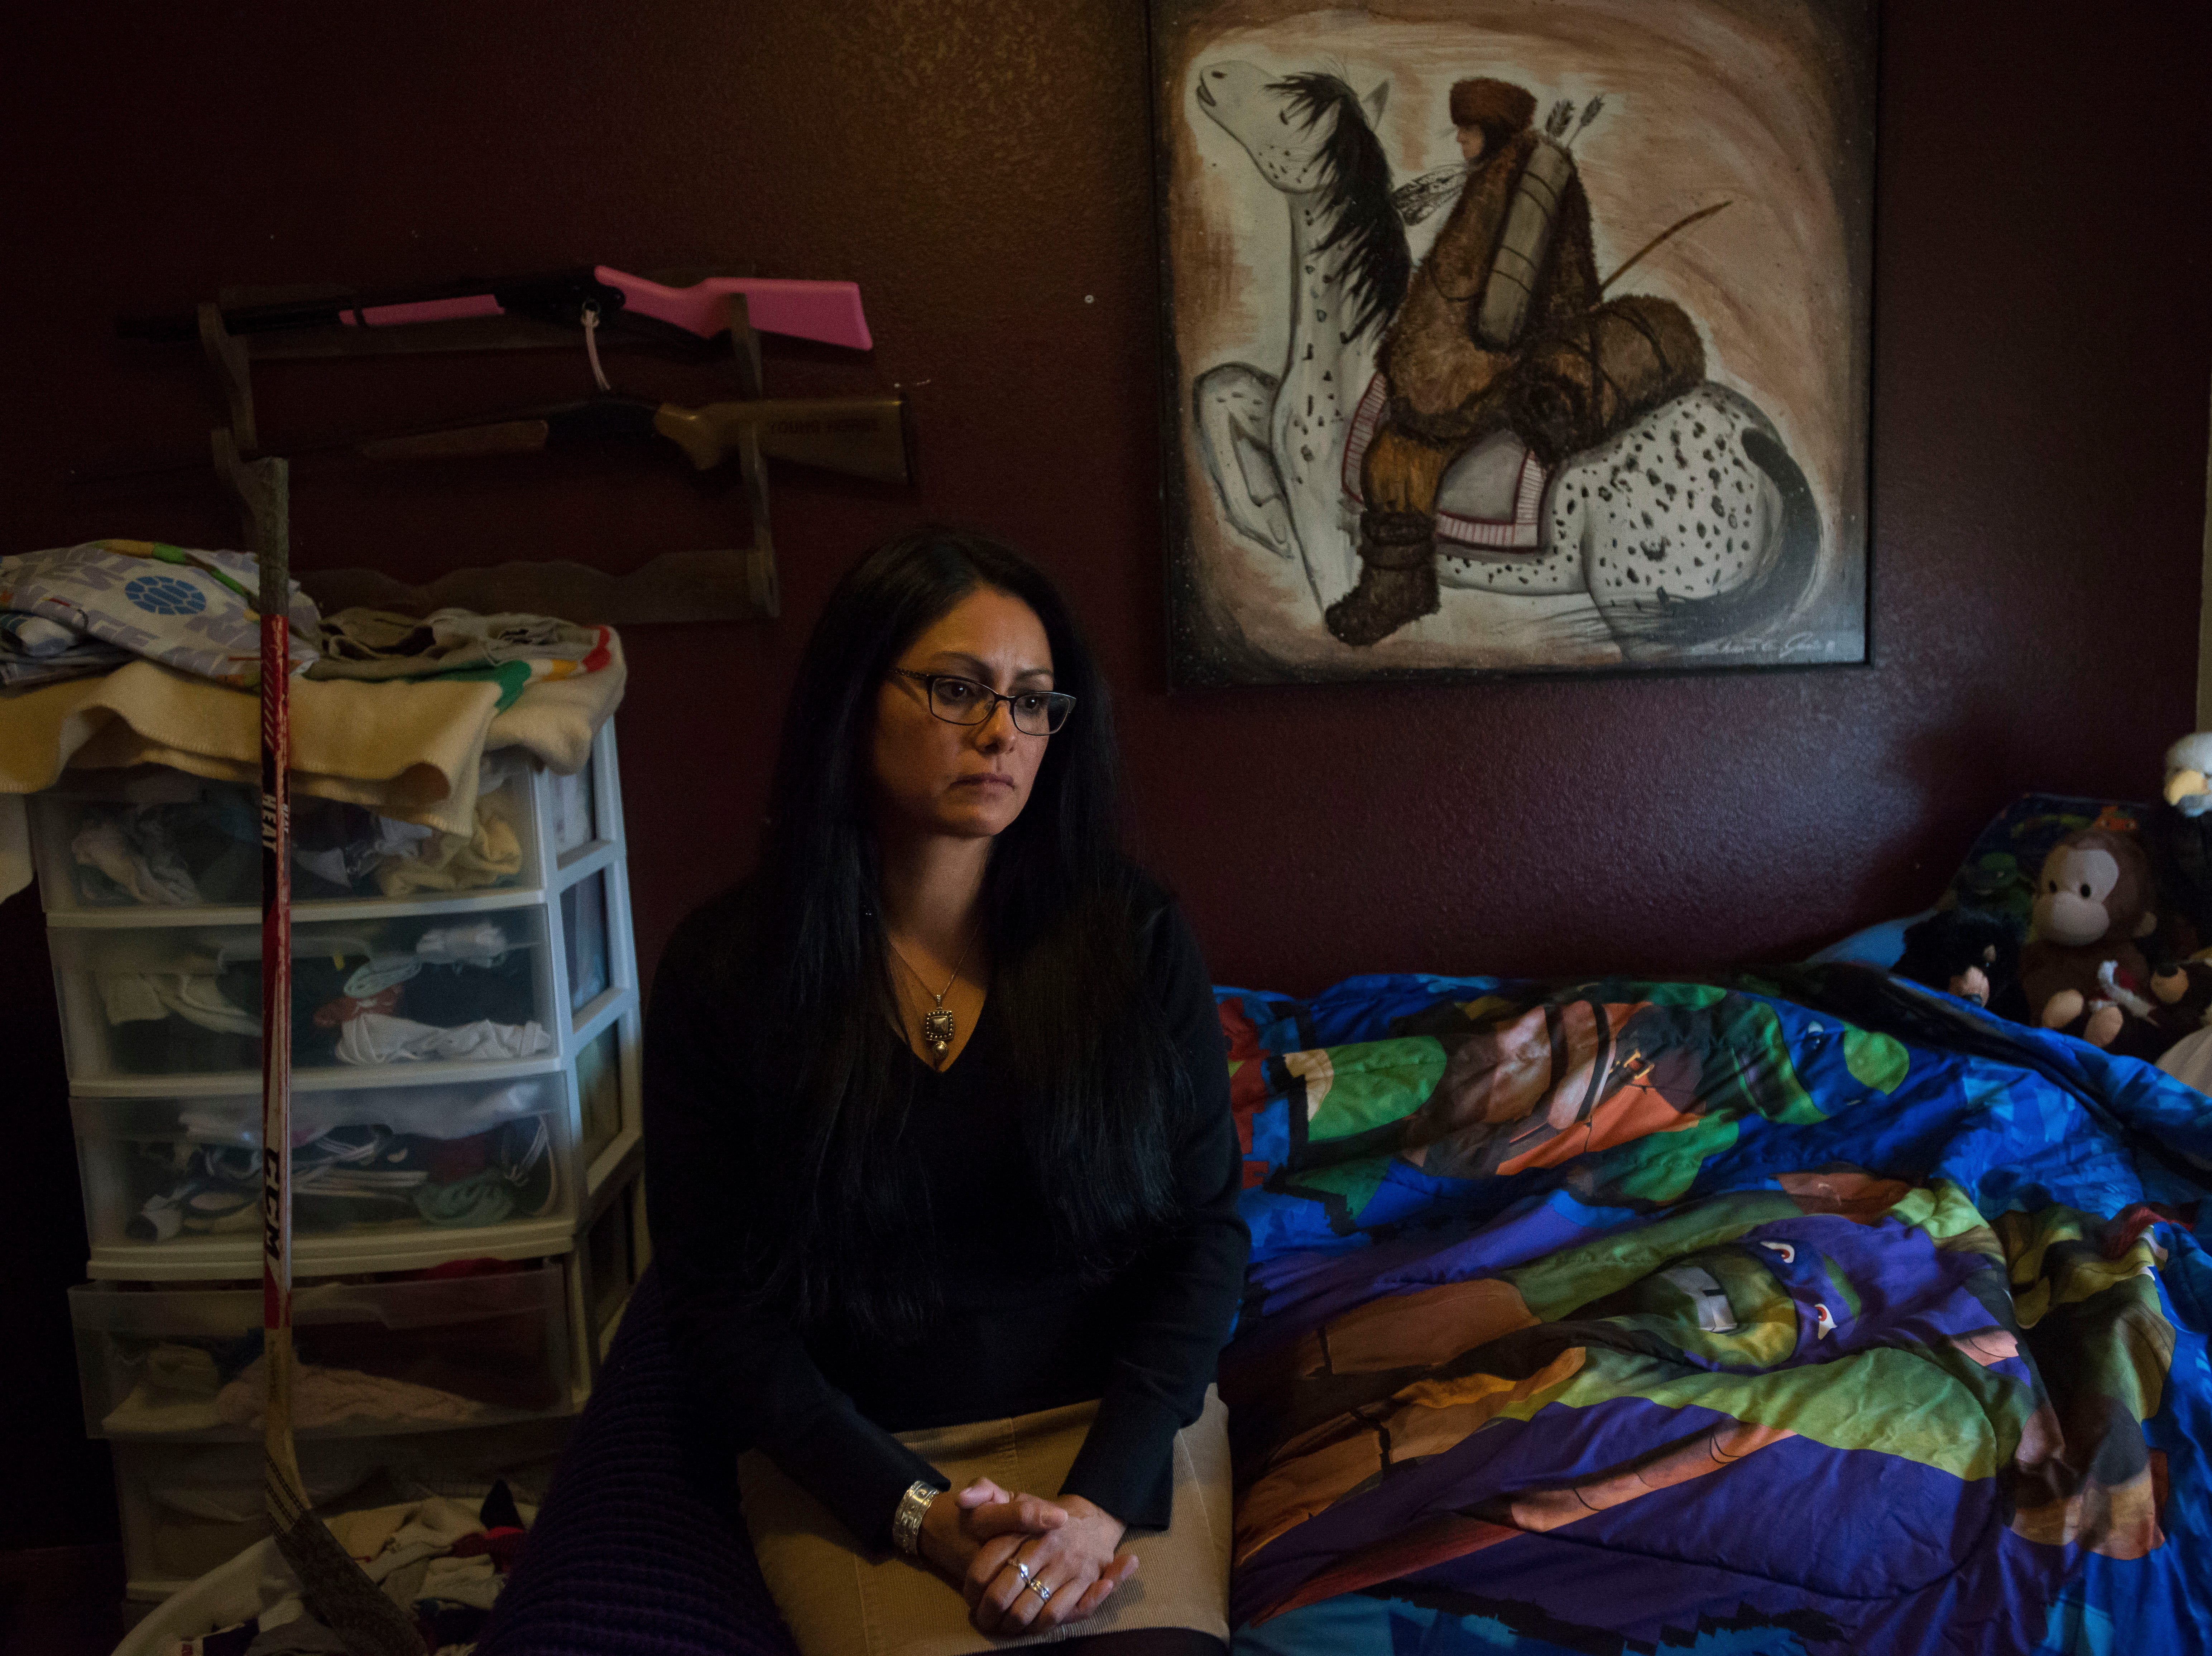 Lydia Lerma, the mother of the first victim who came forward in a child sexual assault case against Andrew Vanderwal, poses for a portrait in her child's bedroom on Tuesday, April 10, 2018, at her home in Fort Collins, Colo.